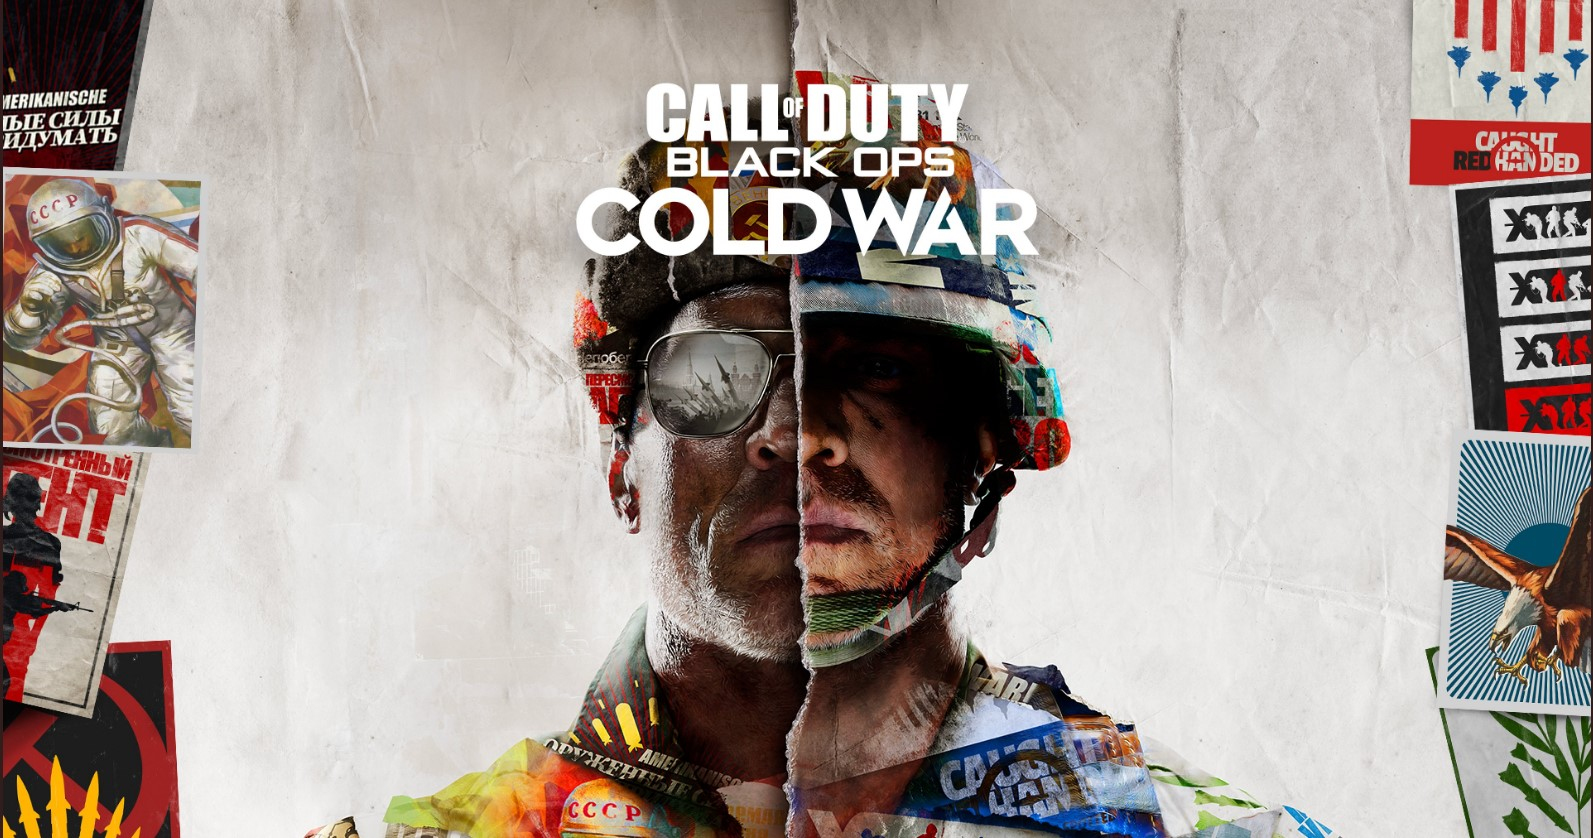 Games Online Call Of Duty Black Ops Cold War Dengan Siza Monster